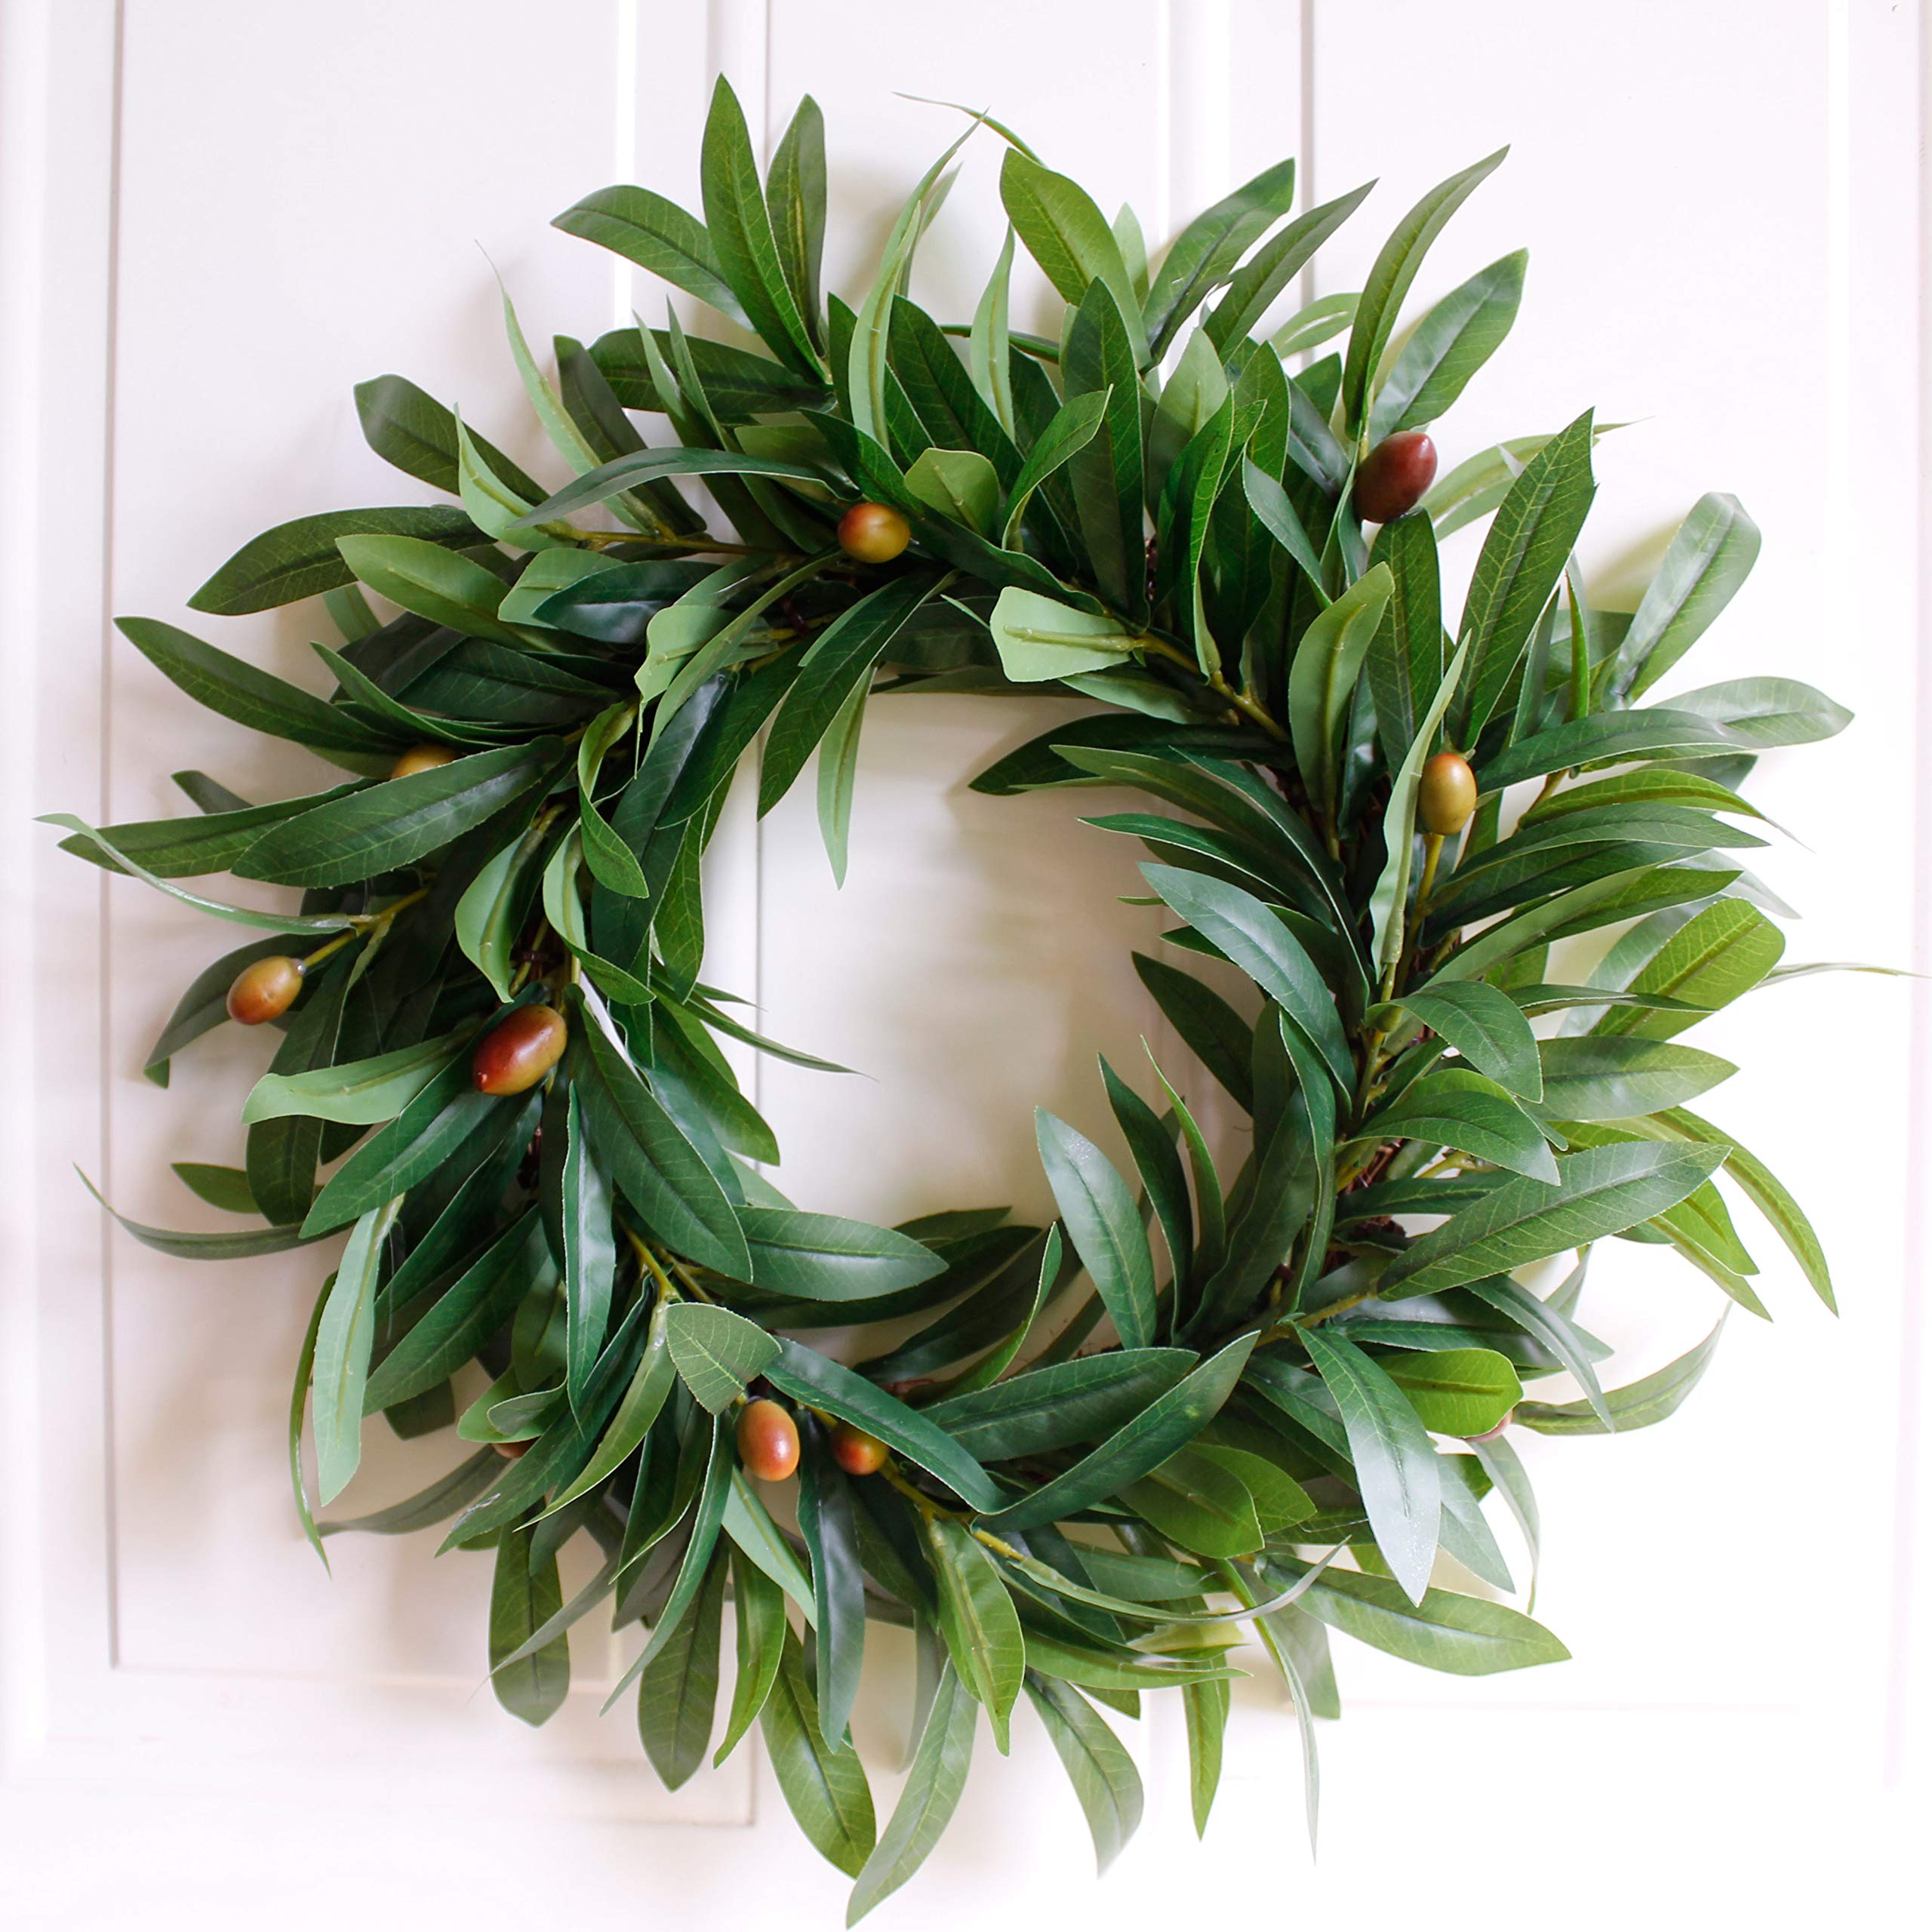 Wreath - Nearly Real, Olive Leaf: 17-Inches Rustic Farmhouse, Greenery Wreaths, Faux Foliage Wreath, for Front Door, Welcome, Christmas, Outdoor, Indoor - Round, Green by Dseap